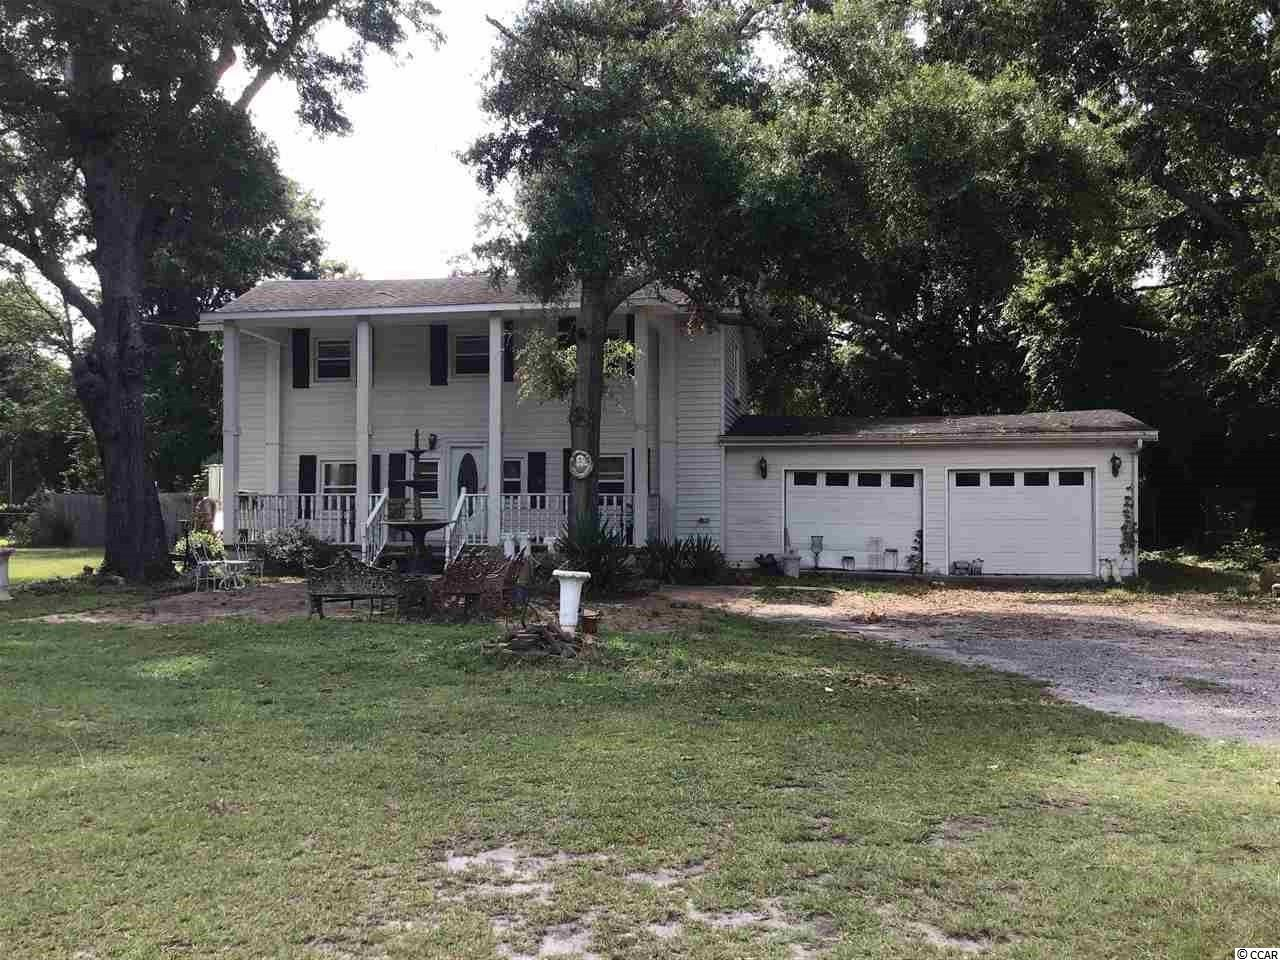 This home is located in the heart of Murrells Inlet not far from the  Marshwalk and all of the seafood restaurants you could ever want. Have you been looking for a home with a big yard that's not in a cookie cutter neighborhood ? Here it is ! No HOA, so you can part your boat, etc without an issues. This home has a 2 car garage and  sits on .77 acres.